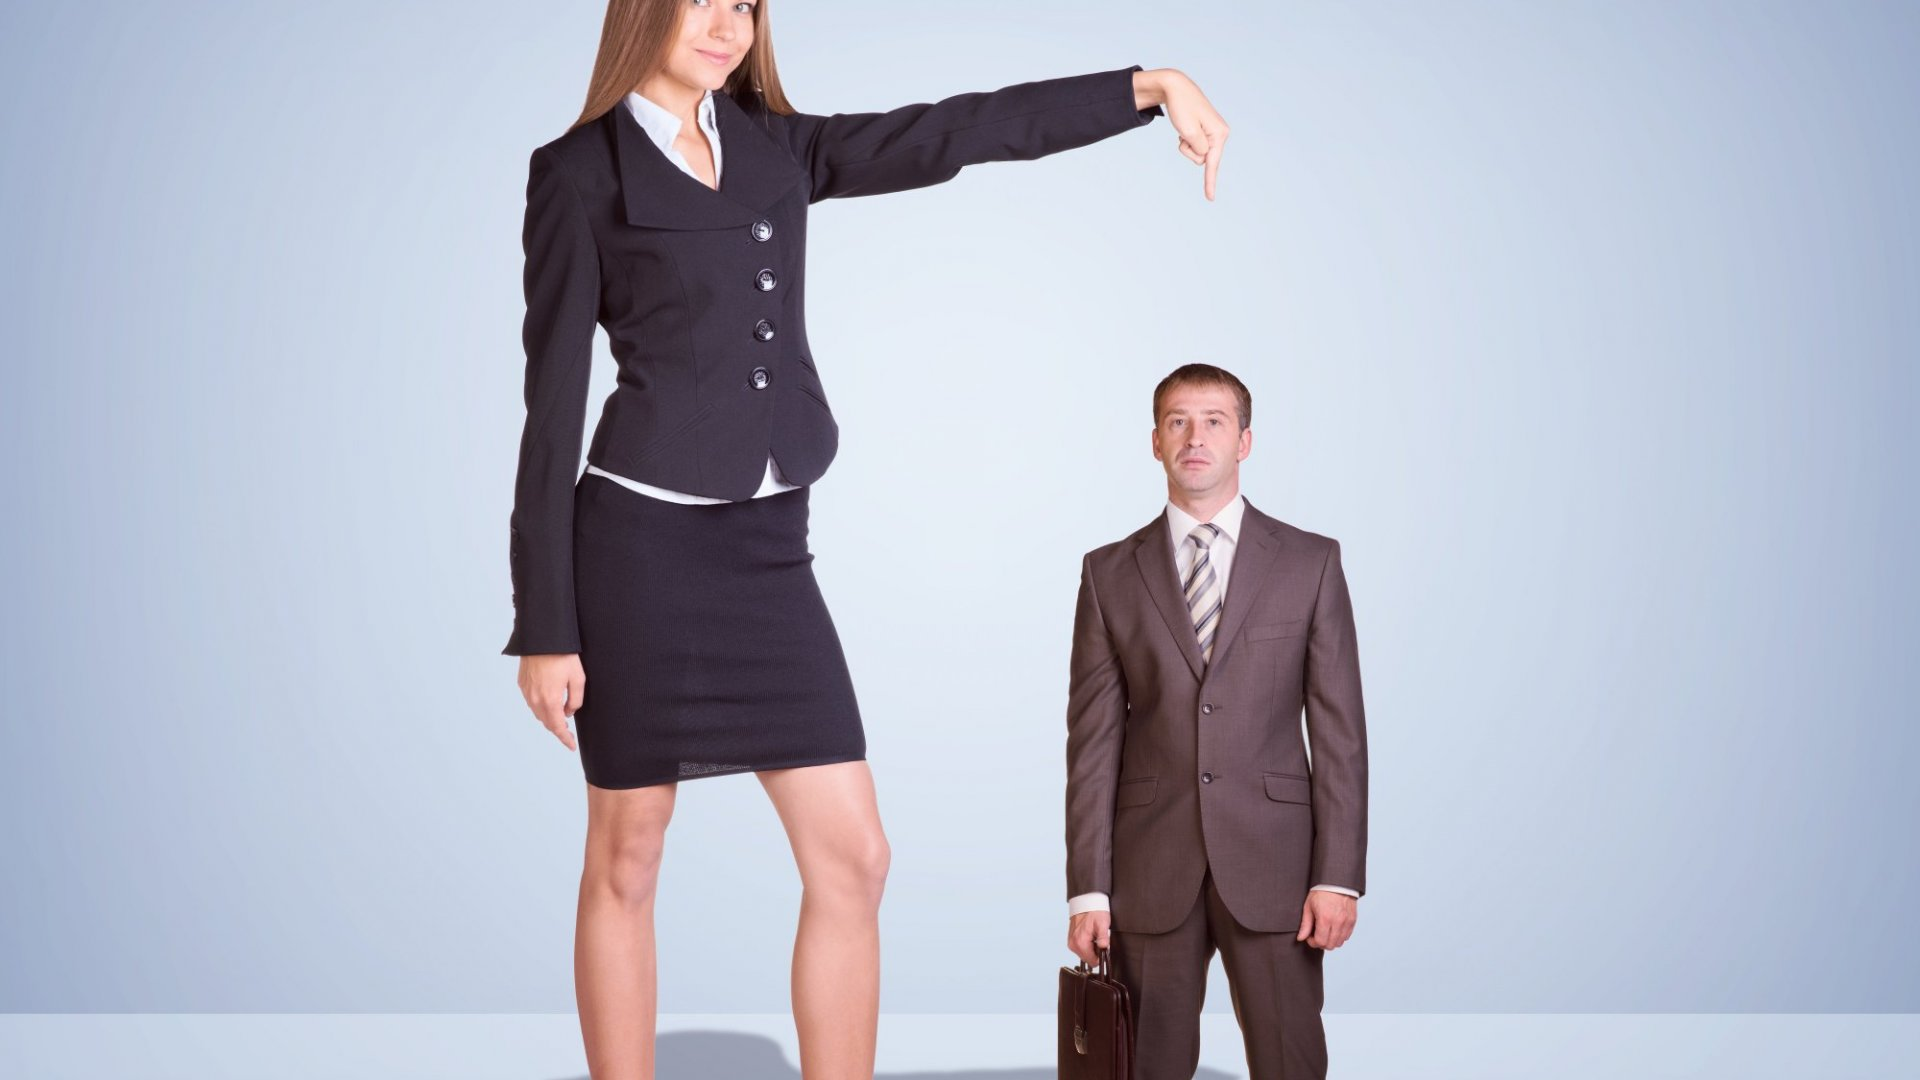 Candidate A Has Too Much Experience. Candidate B Has Too Little. Whom Should You Hire?